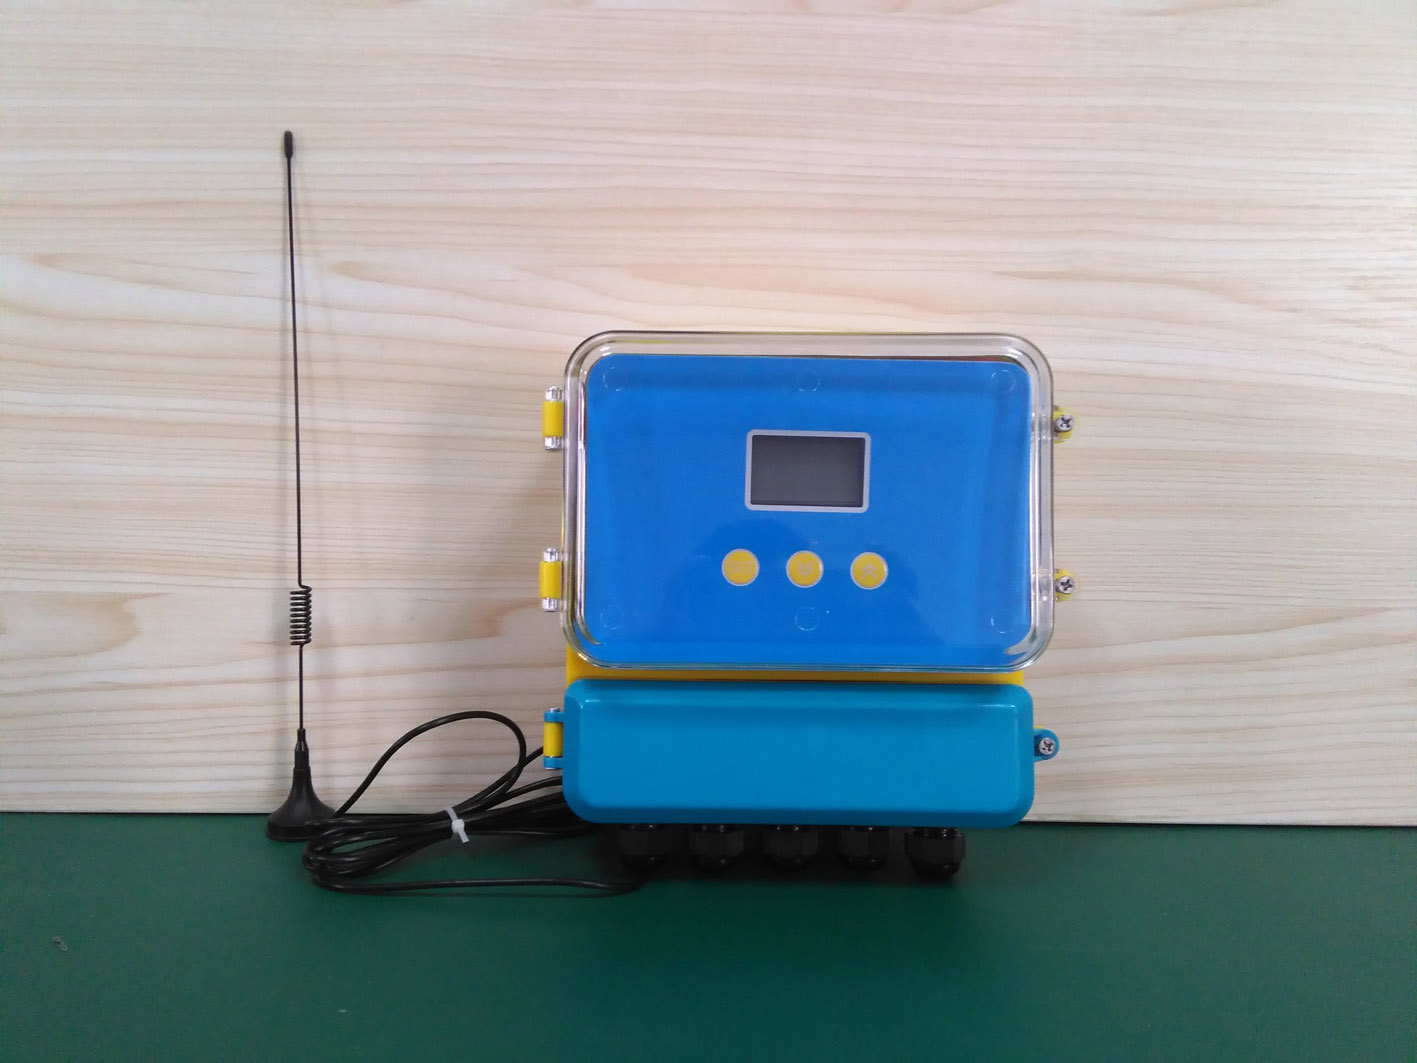 GPRS Mobile Phone Signal Transmission Of Wireless Ultrasound Level Meter (with Background Server Software)